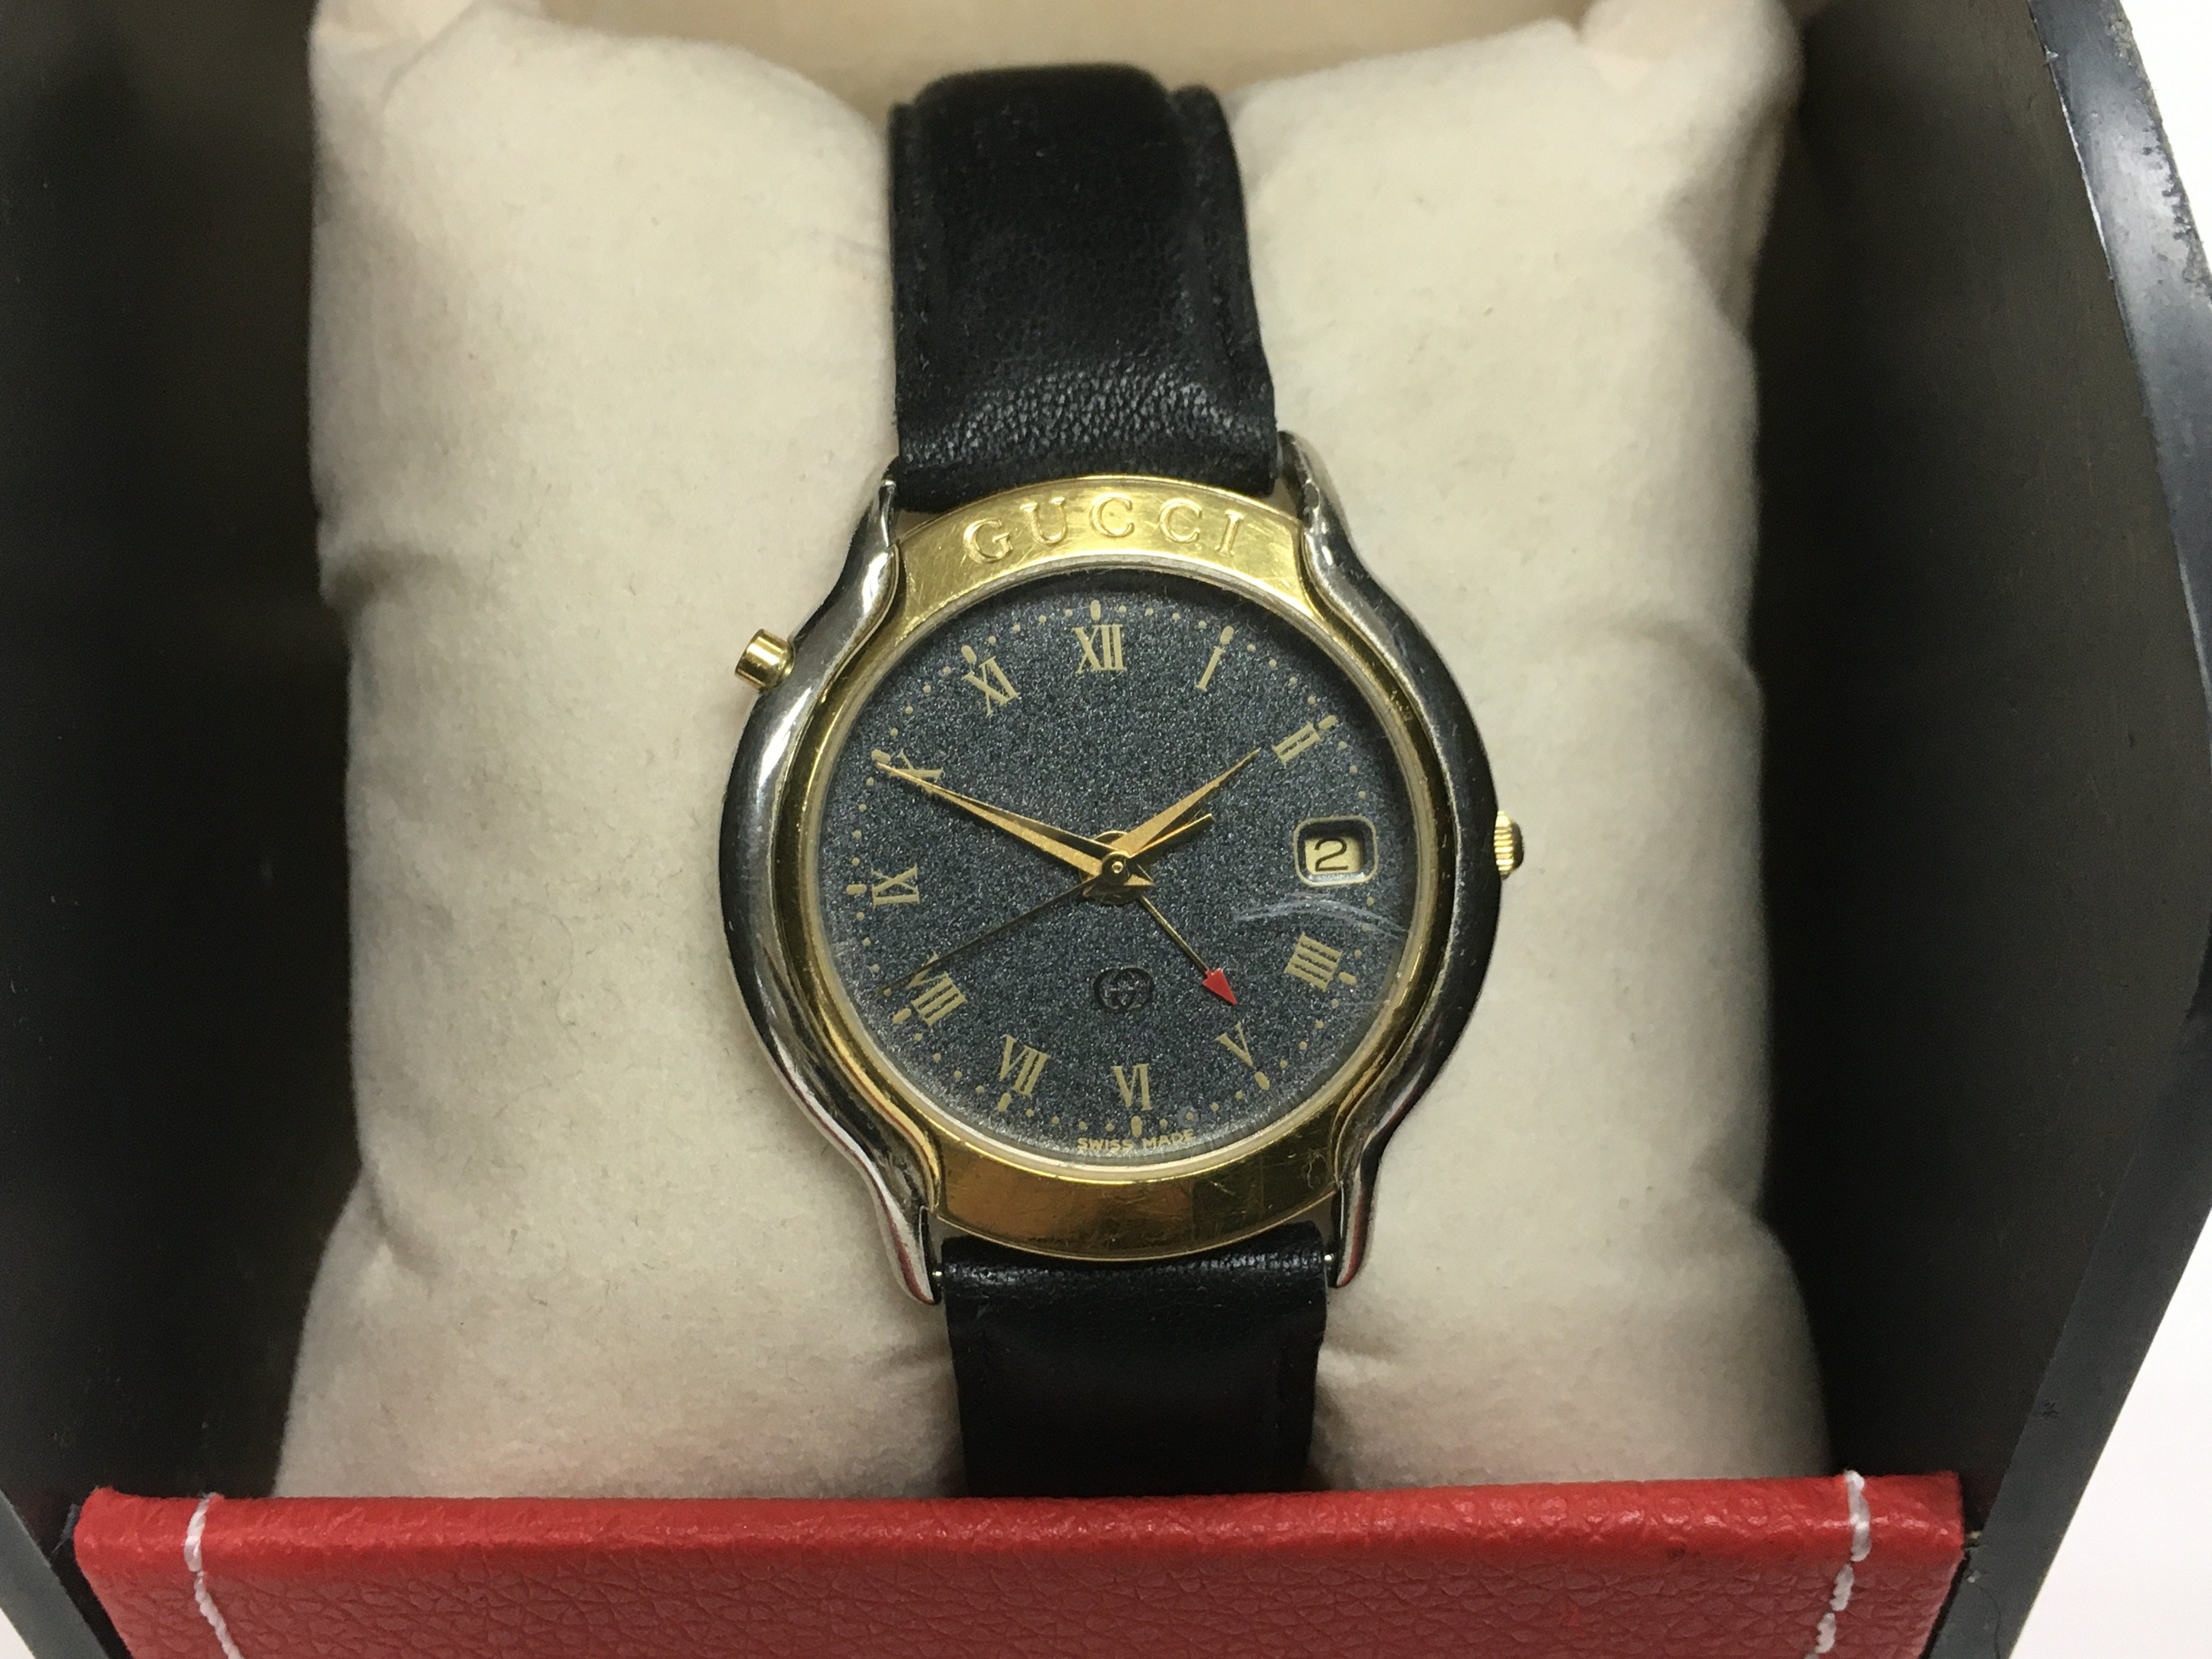 Lot 57 - A Gucci black and gold tone watch with a black lea